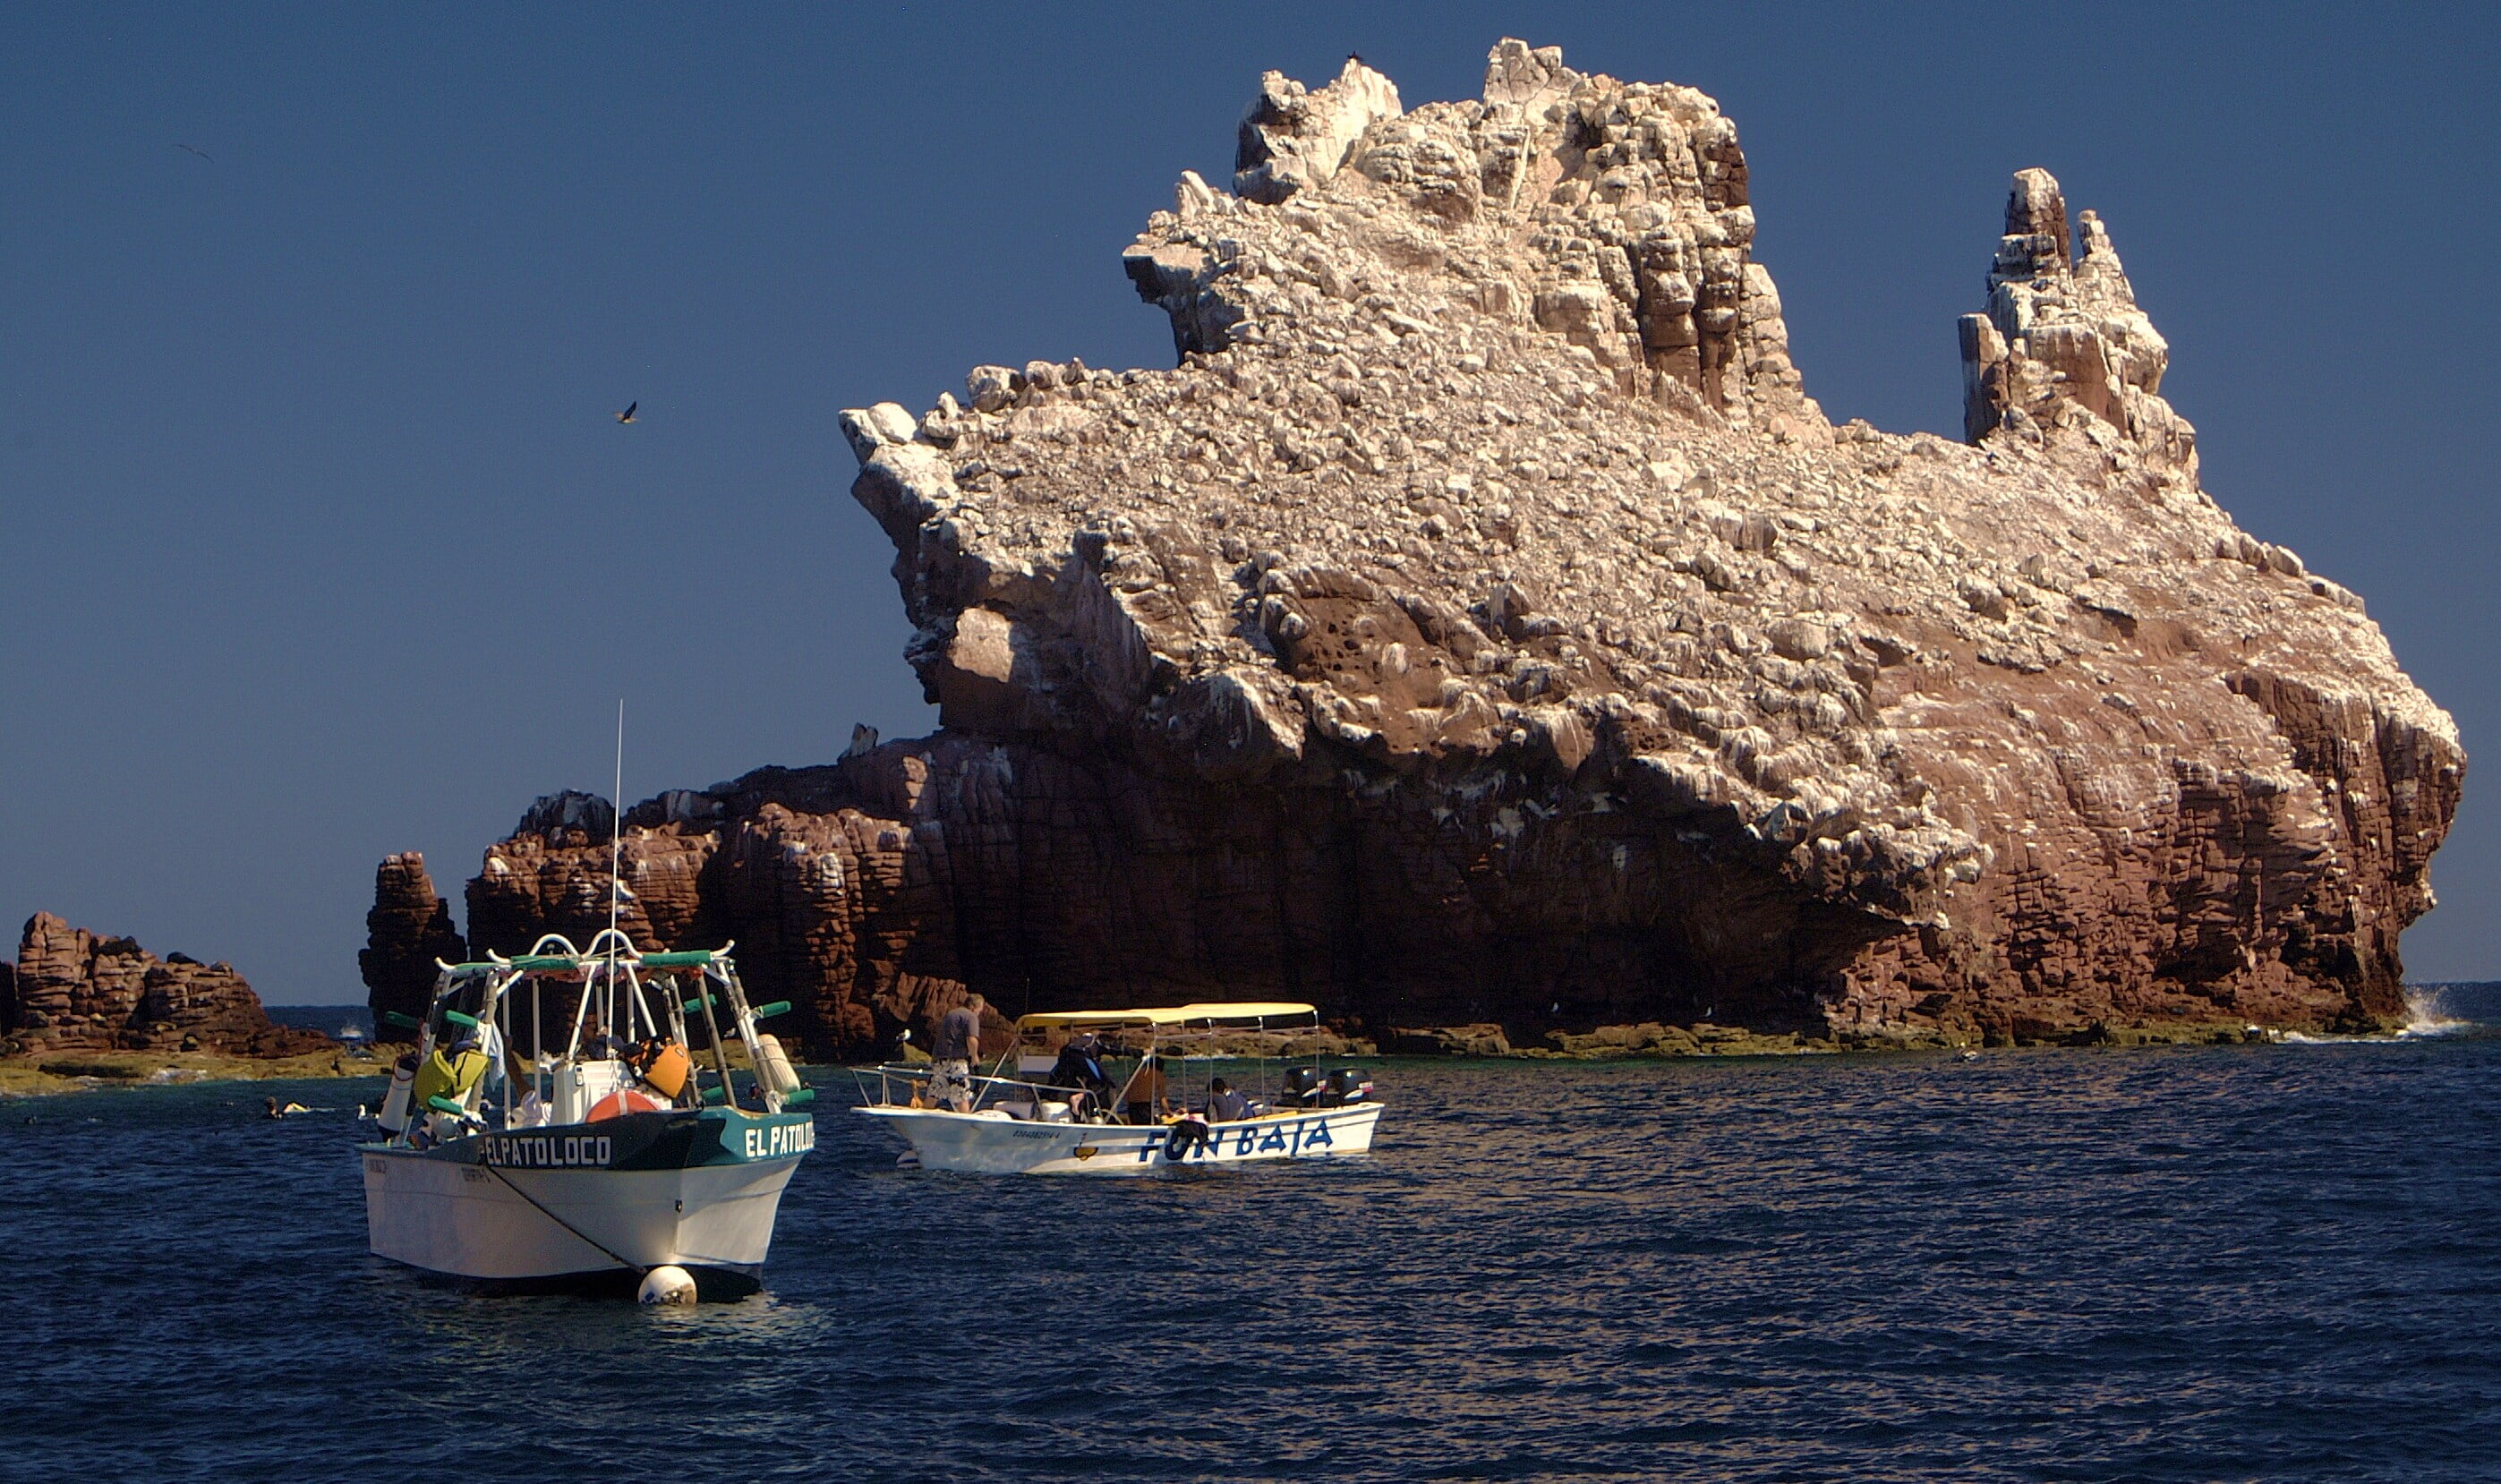 La Paz and the Costa Baja Resort On the Sea of Cortez